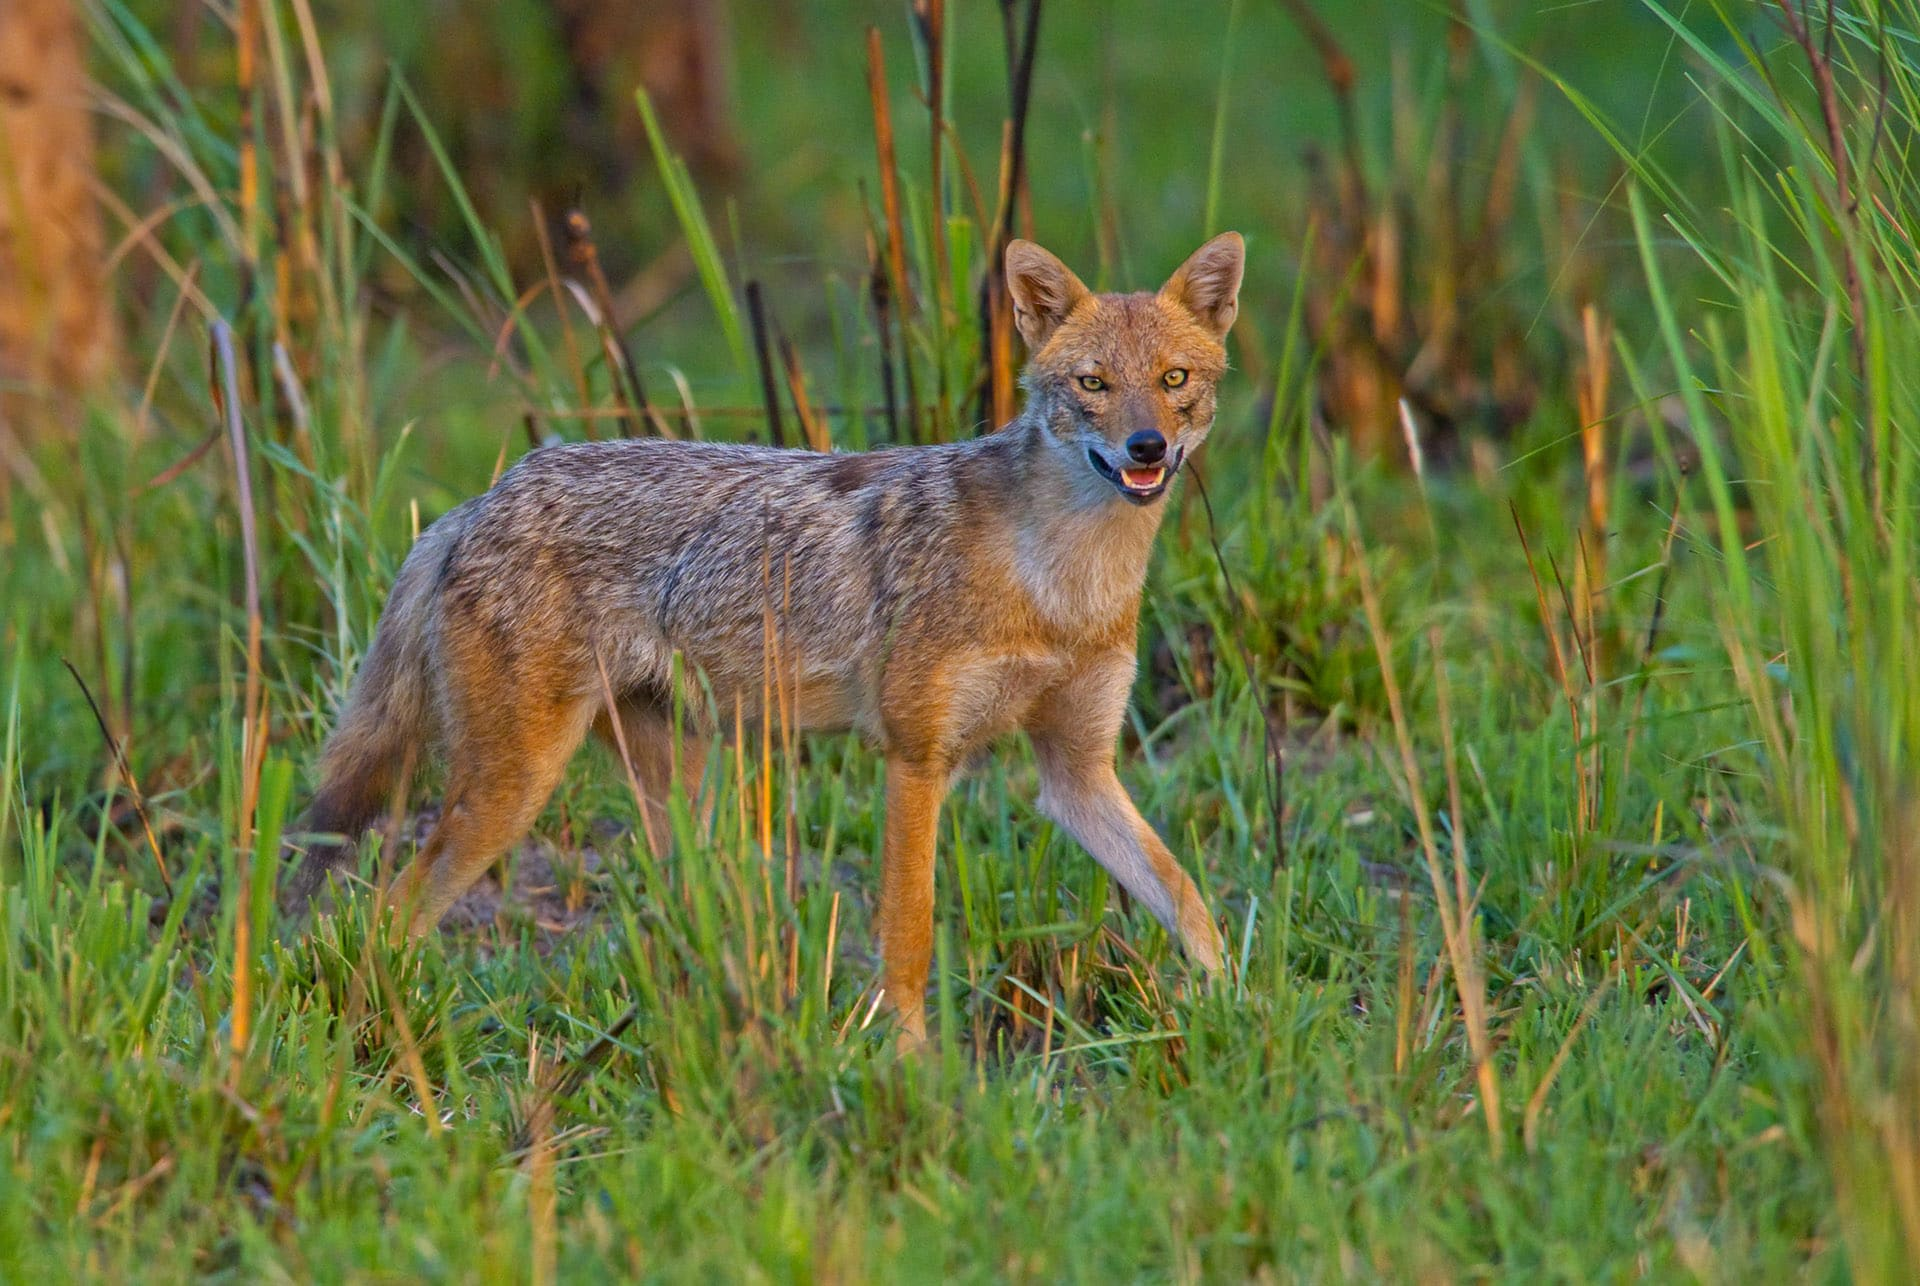 The golden jackals of north India such as this individual photographed in the Pilibhit Tiger Reserve, Uttar Pradesh, tend to be larger and heavier than their cousins found in peninsular India. Photo: Dhritiman Mukherjee   Cover: Found in almost all protected areas of India except those in the high Himalayas, the golden jackal or Indian jackal is the most widespread wild canid in the Indian subcontinent. It is believed to be a modern-day descendant of the extinct Arno river dog that lived in Mediterranean Europe some 1.9 million years ago. Cover photo: Dhritiman Mukherjee